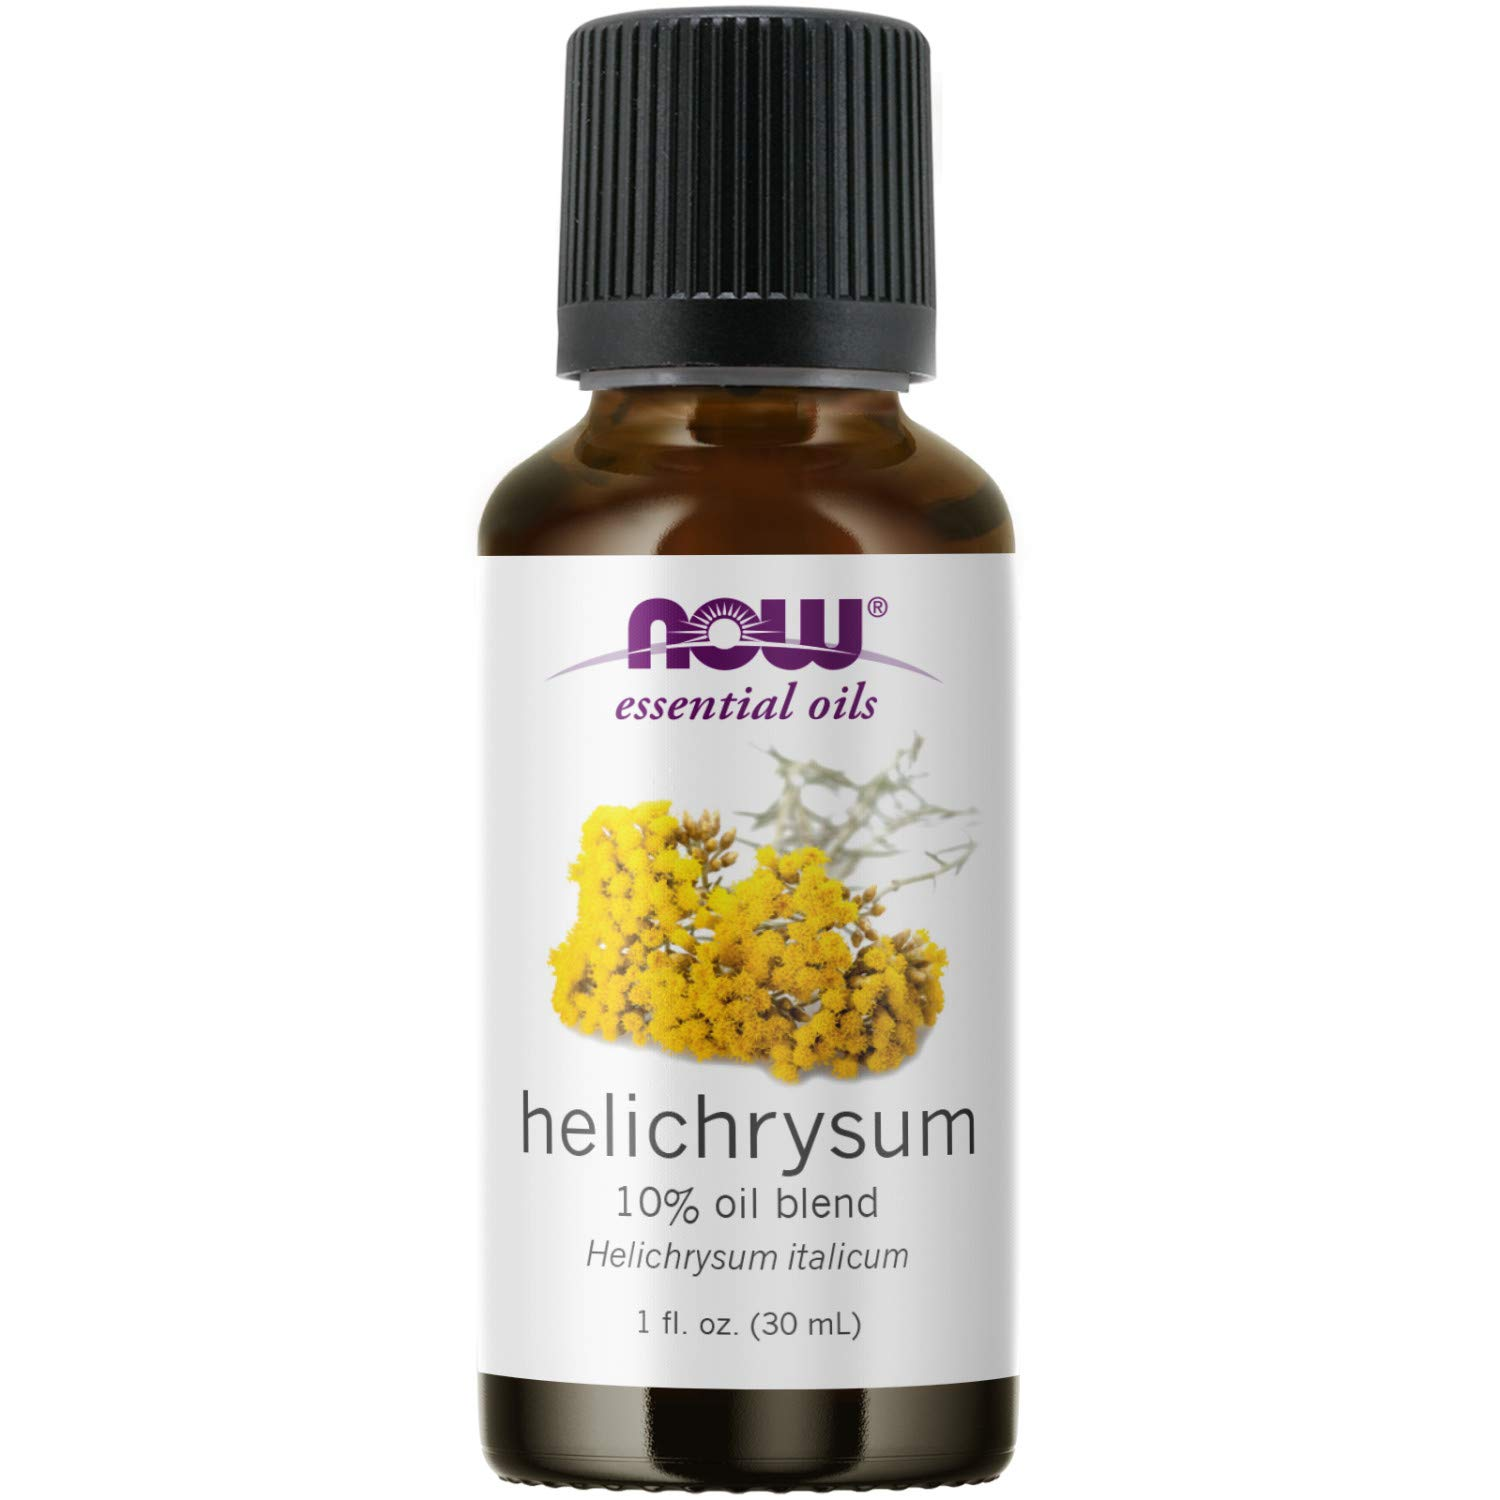 NOW Essential Oils, Helichrysum Oil Blend, Soothing Aromatherapy Scent, Steam Distilled, 100% Pure, Vegan, Child Resistant Cap, 1-Ounce